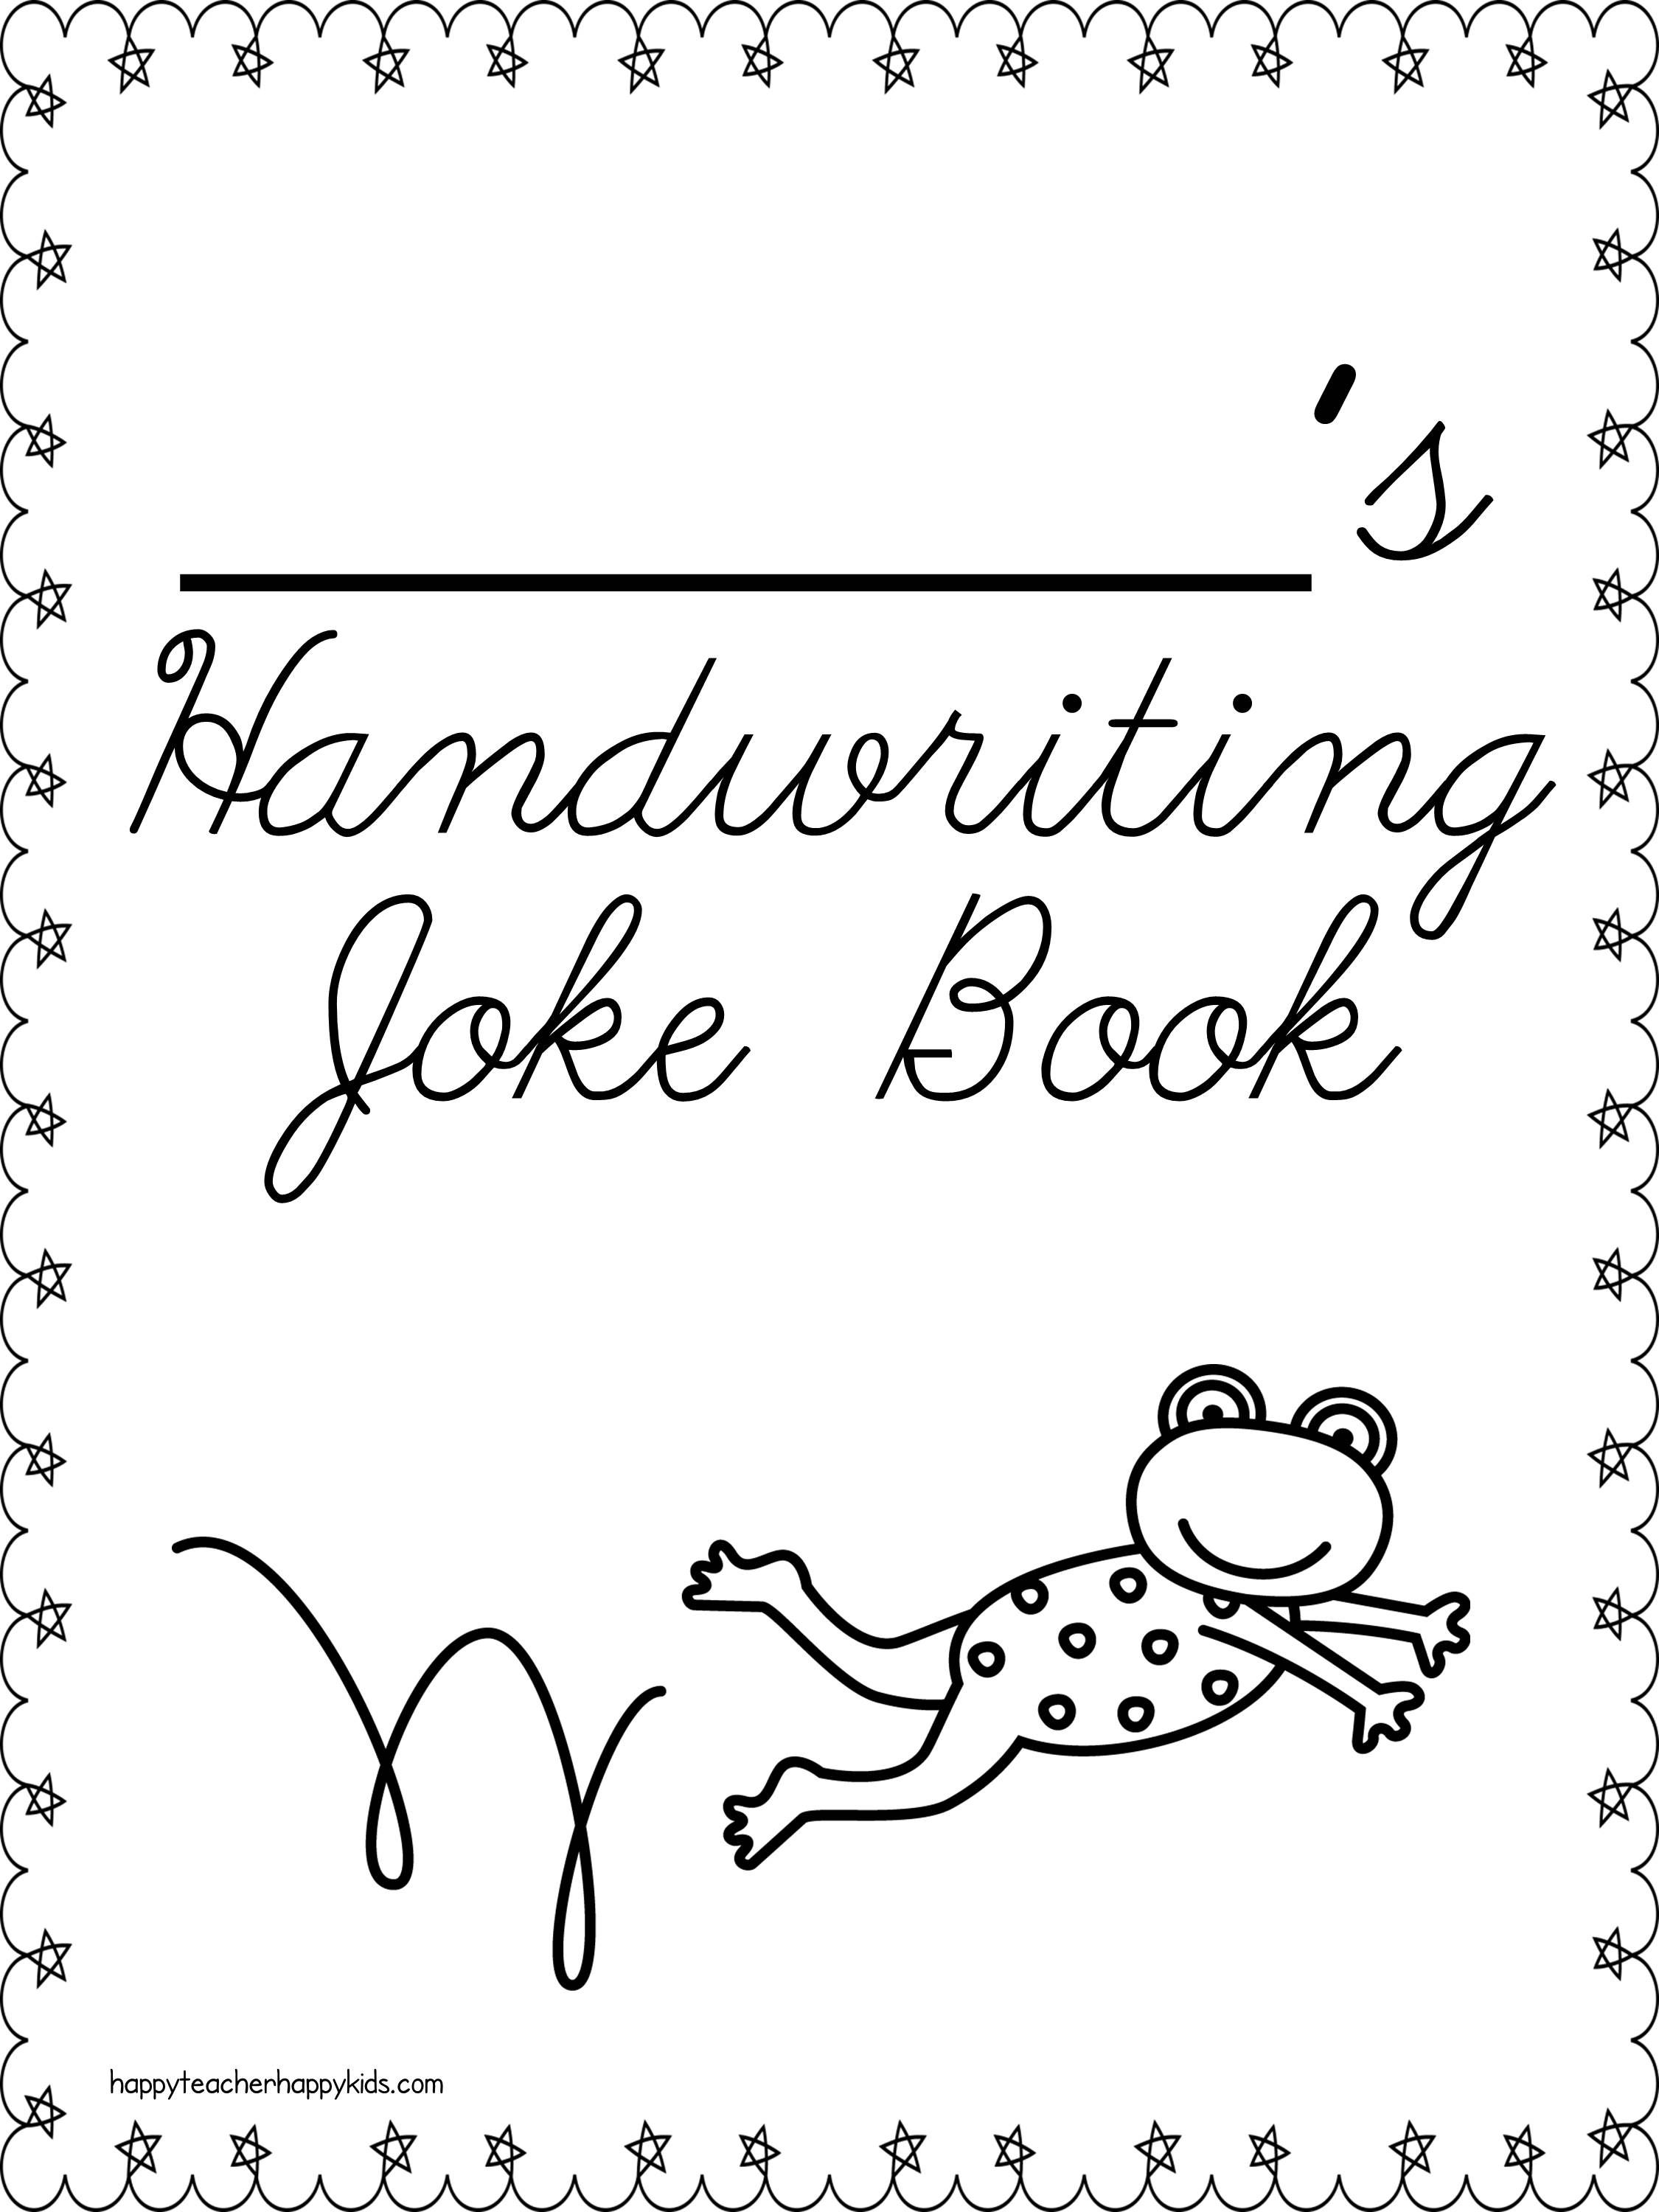 Cursive Handwriting Joke Book- check out the preview for a